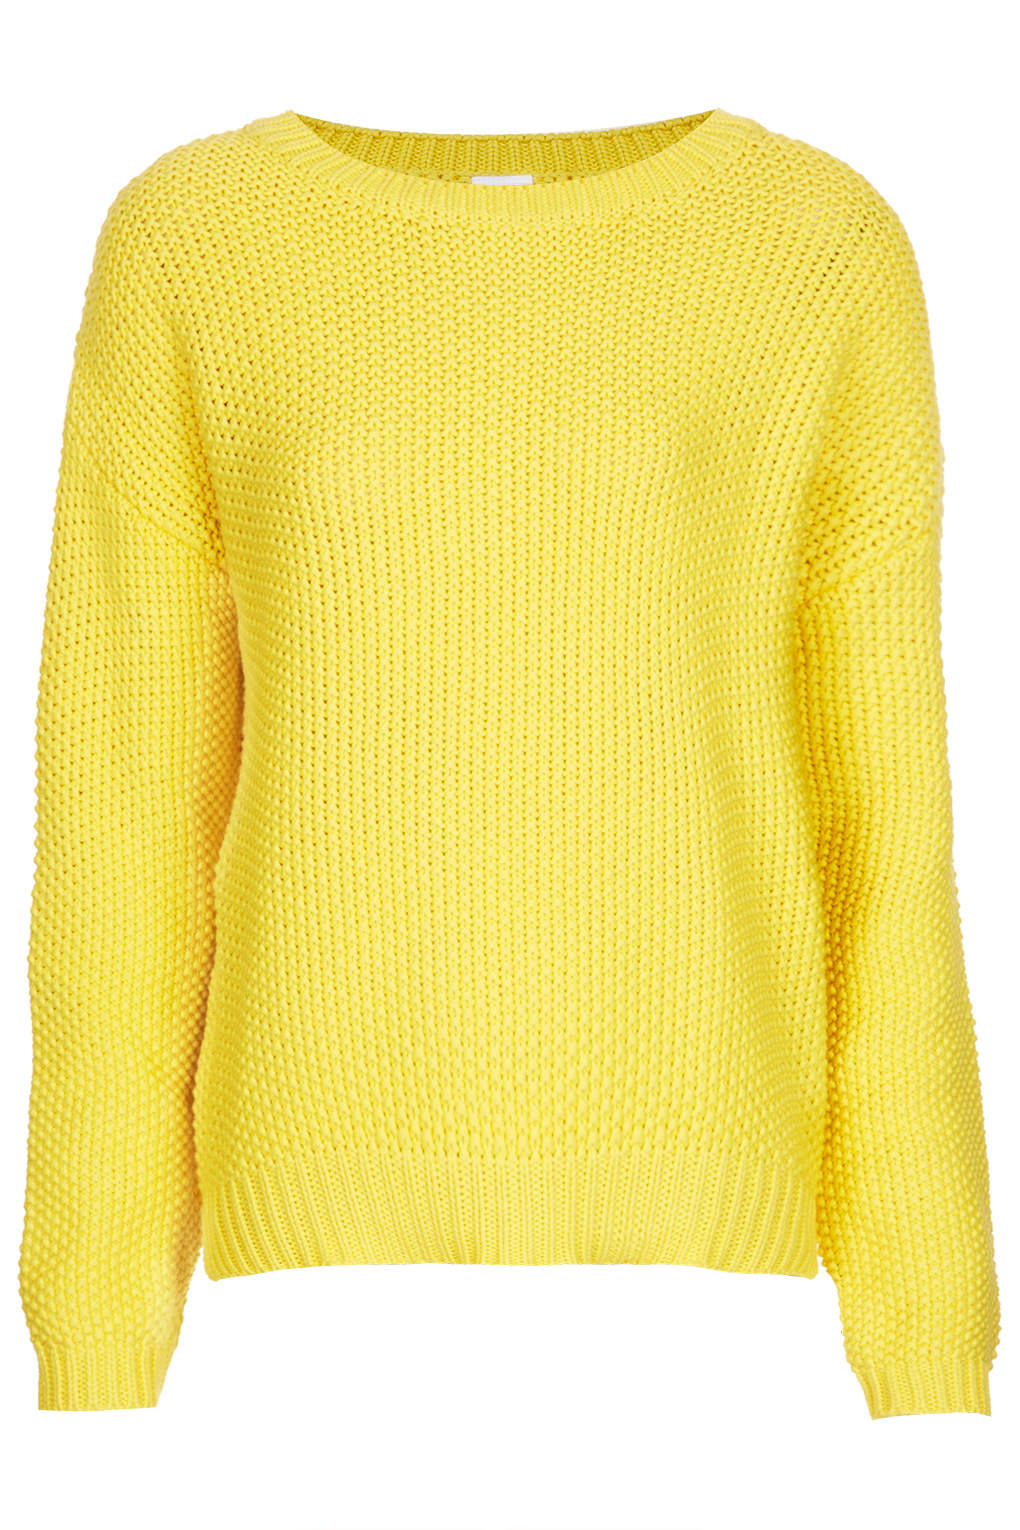 The Wish List: Kate's Yellow Sweater on Trophy Wife | TV Ate My ...